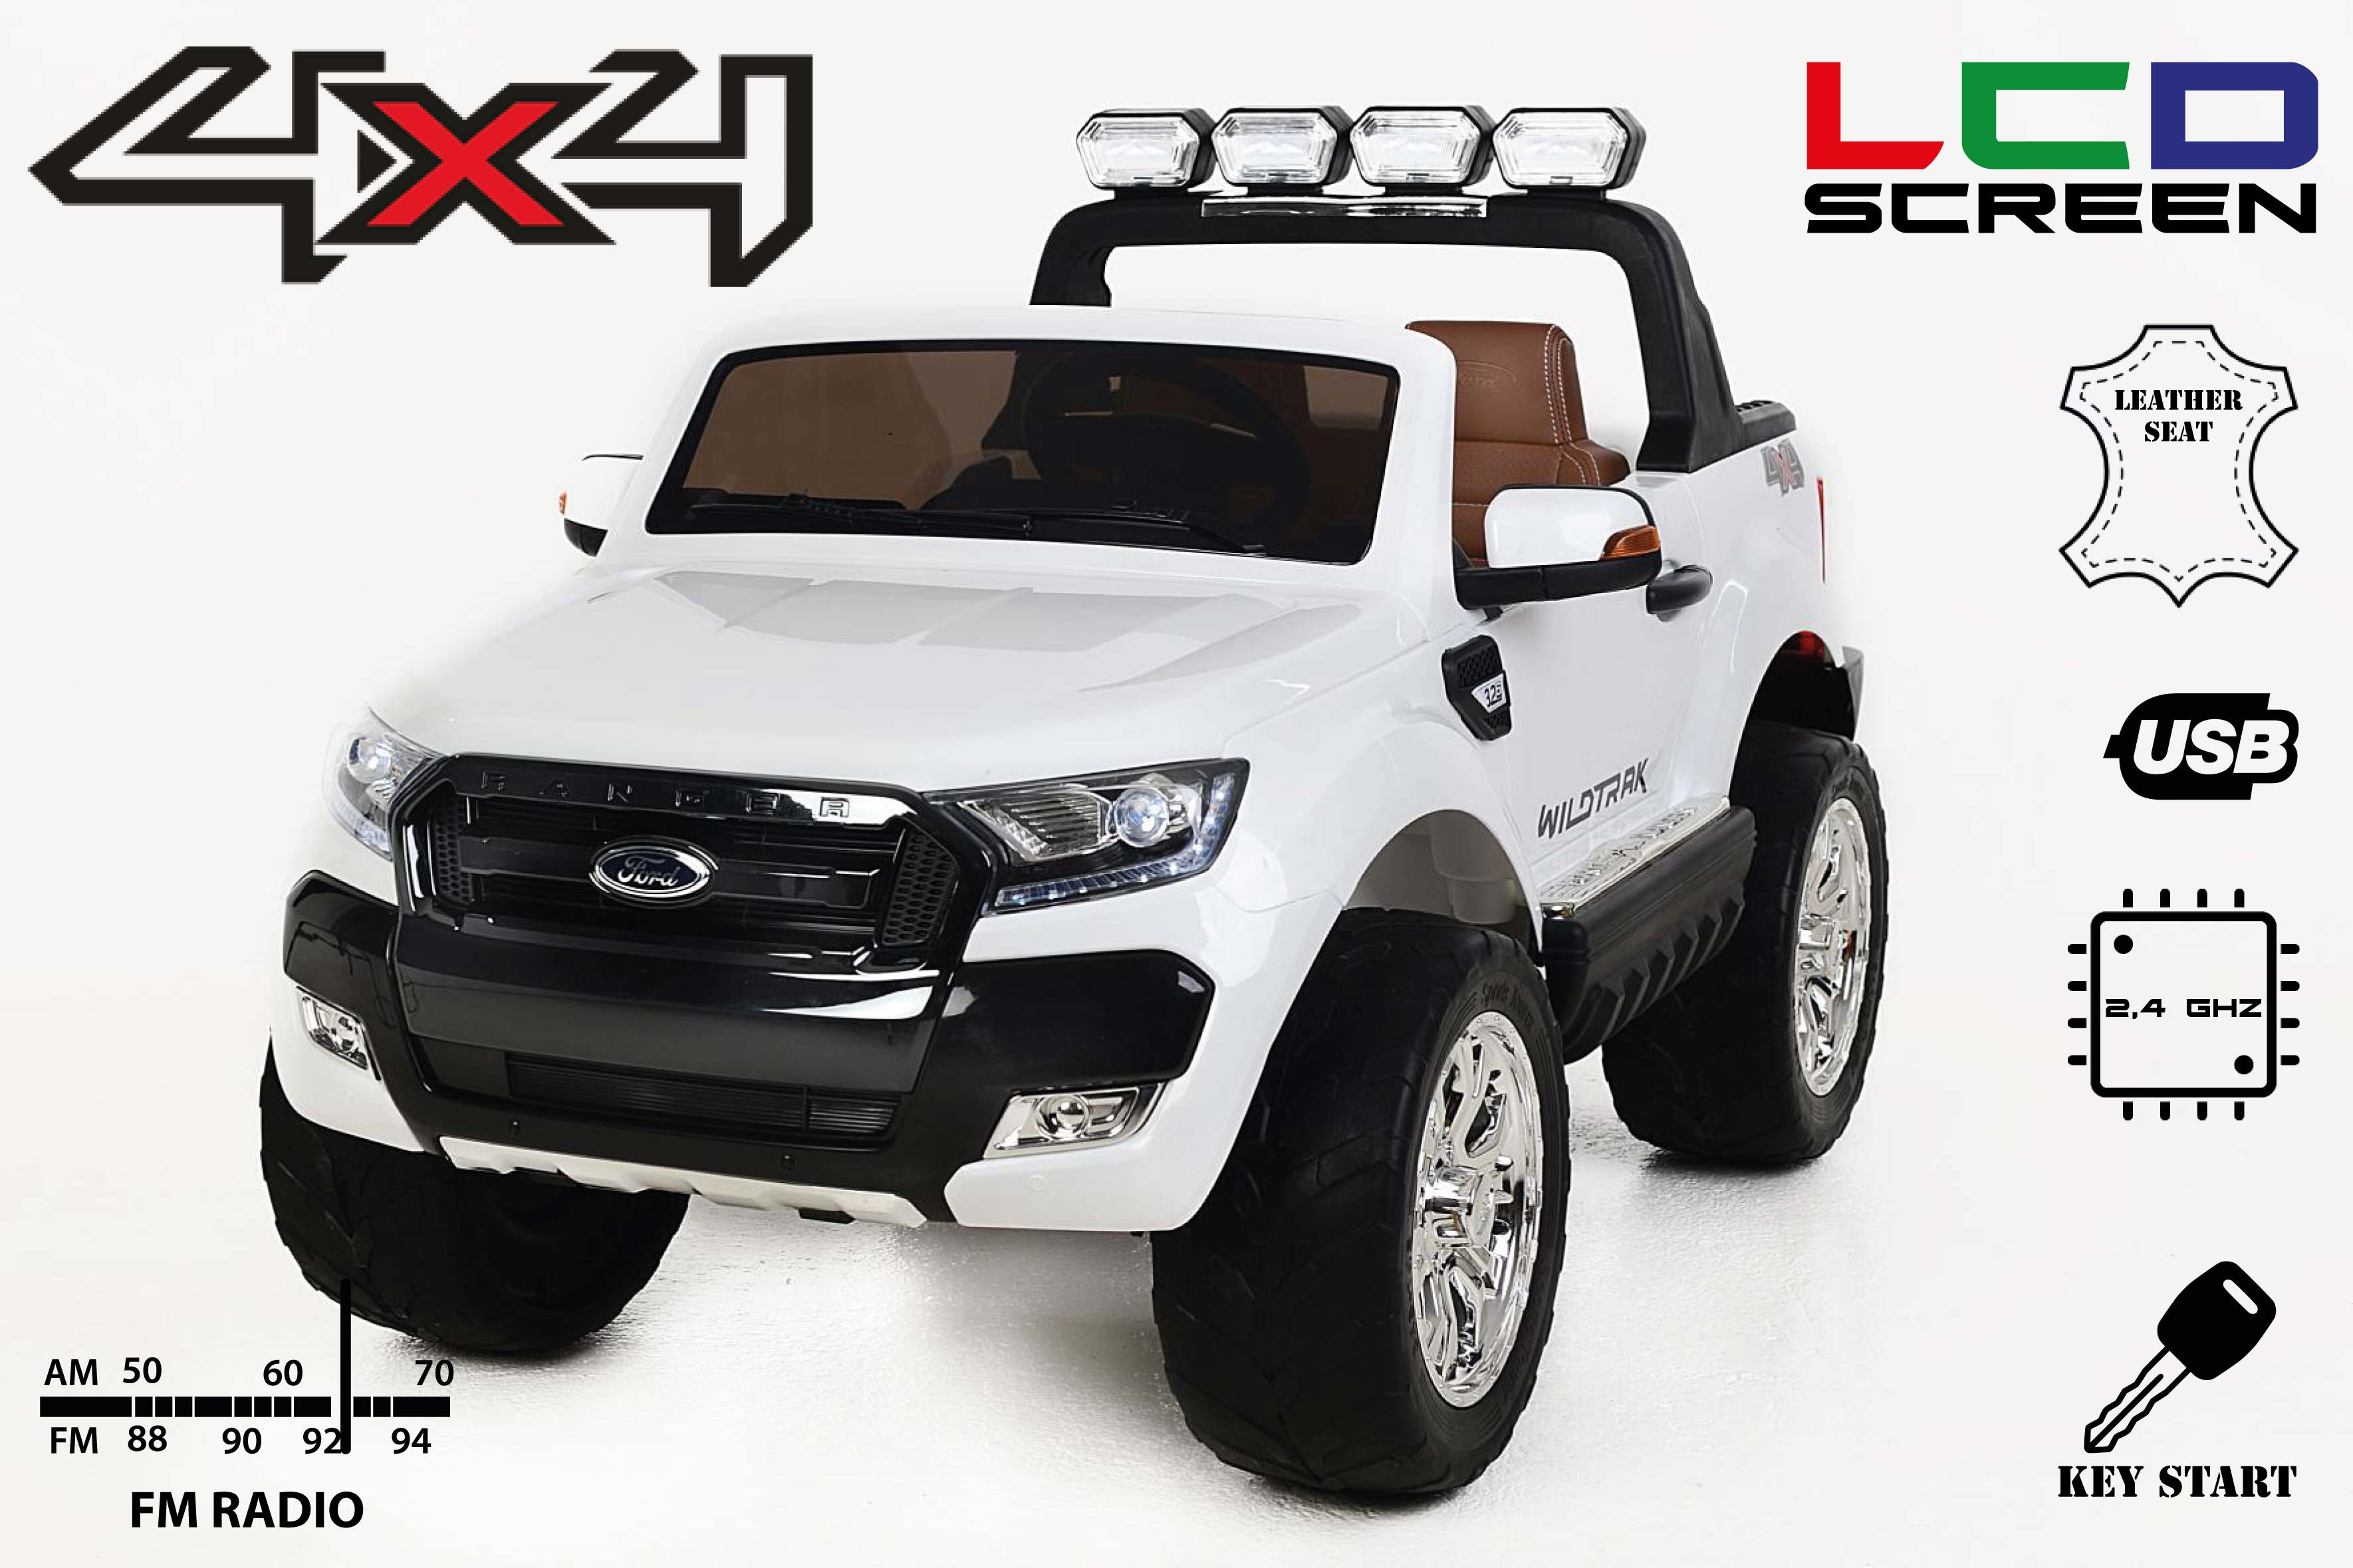 Electric Ride-On Toy Car Ford Ranger Wildtrak 4X4 LCD Luxury, LCD ...